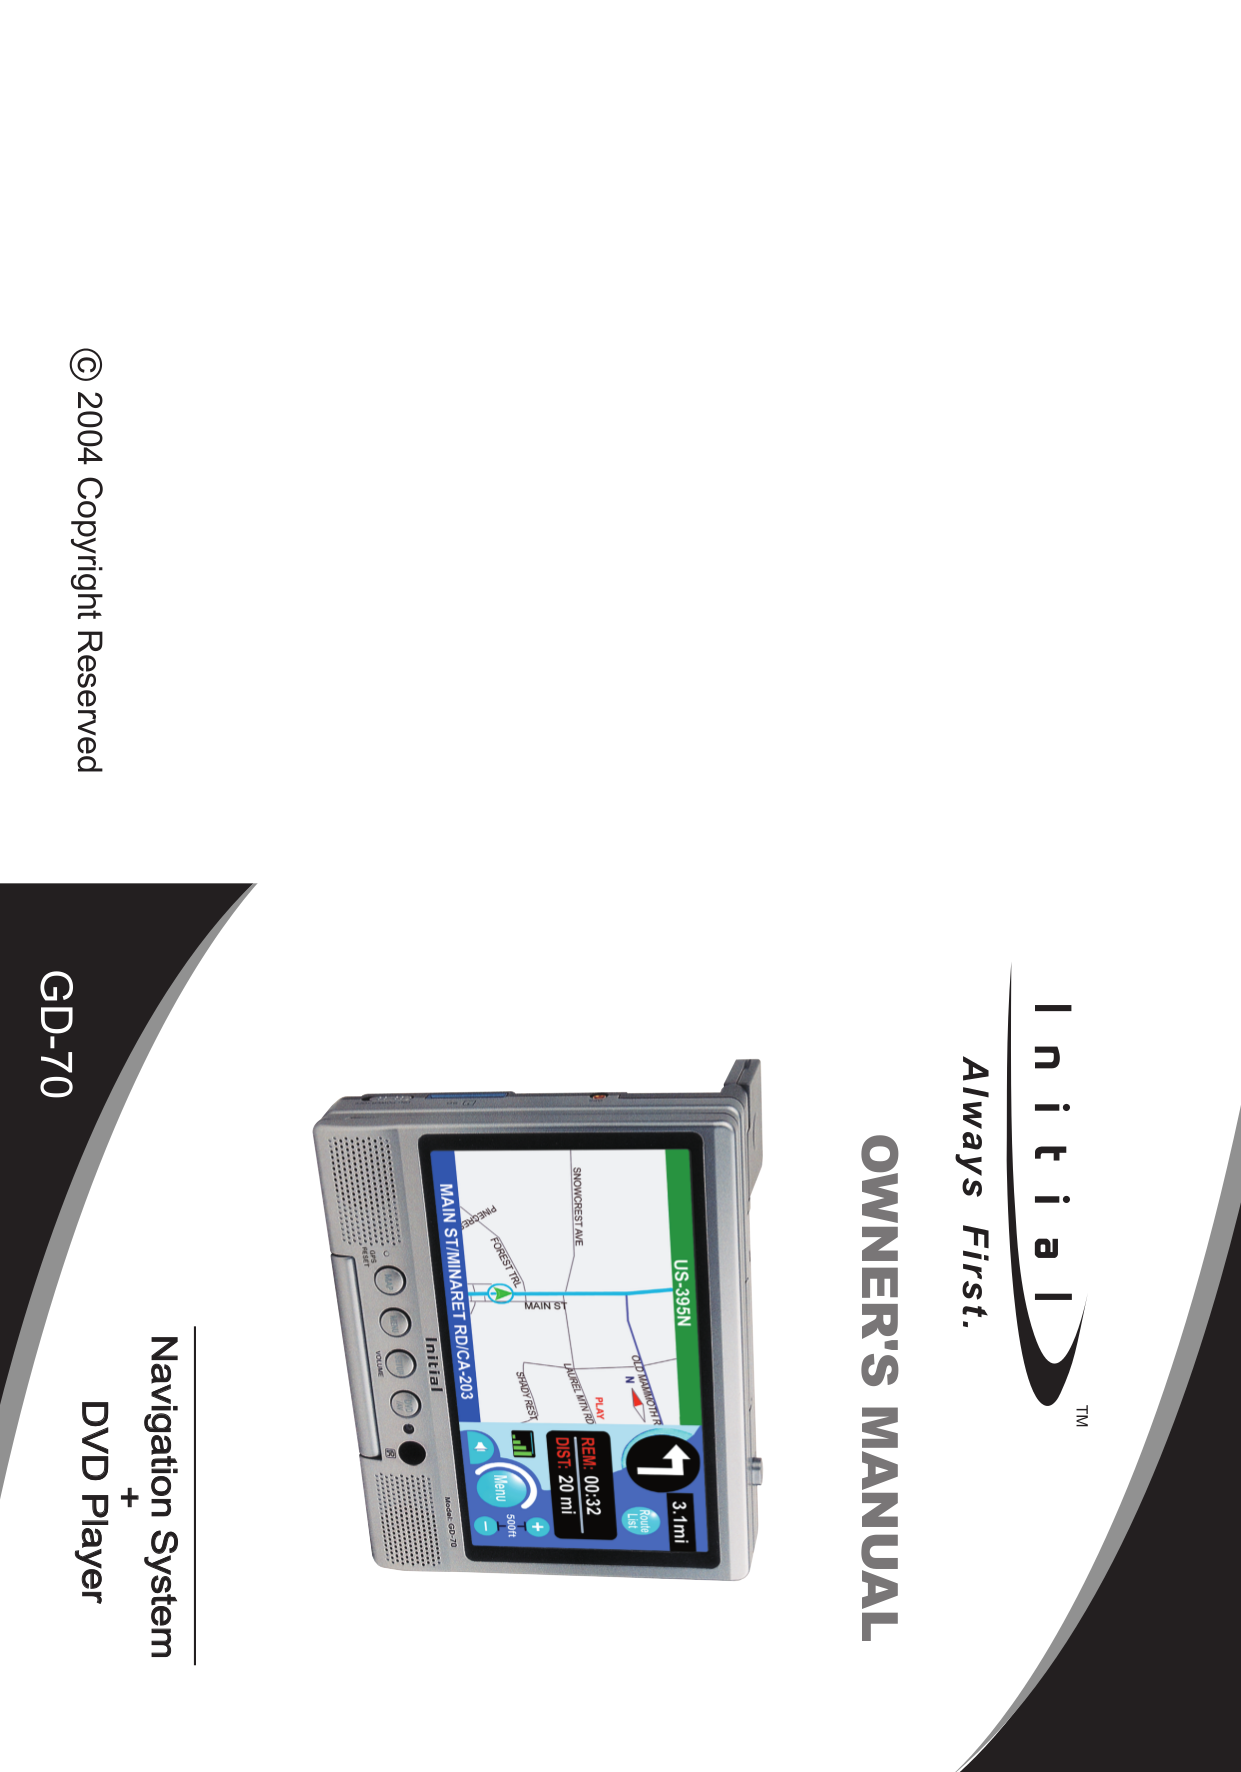 pdf for Intellinav GPS Intellinav 1 manual